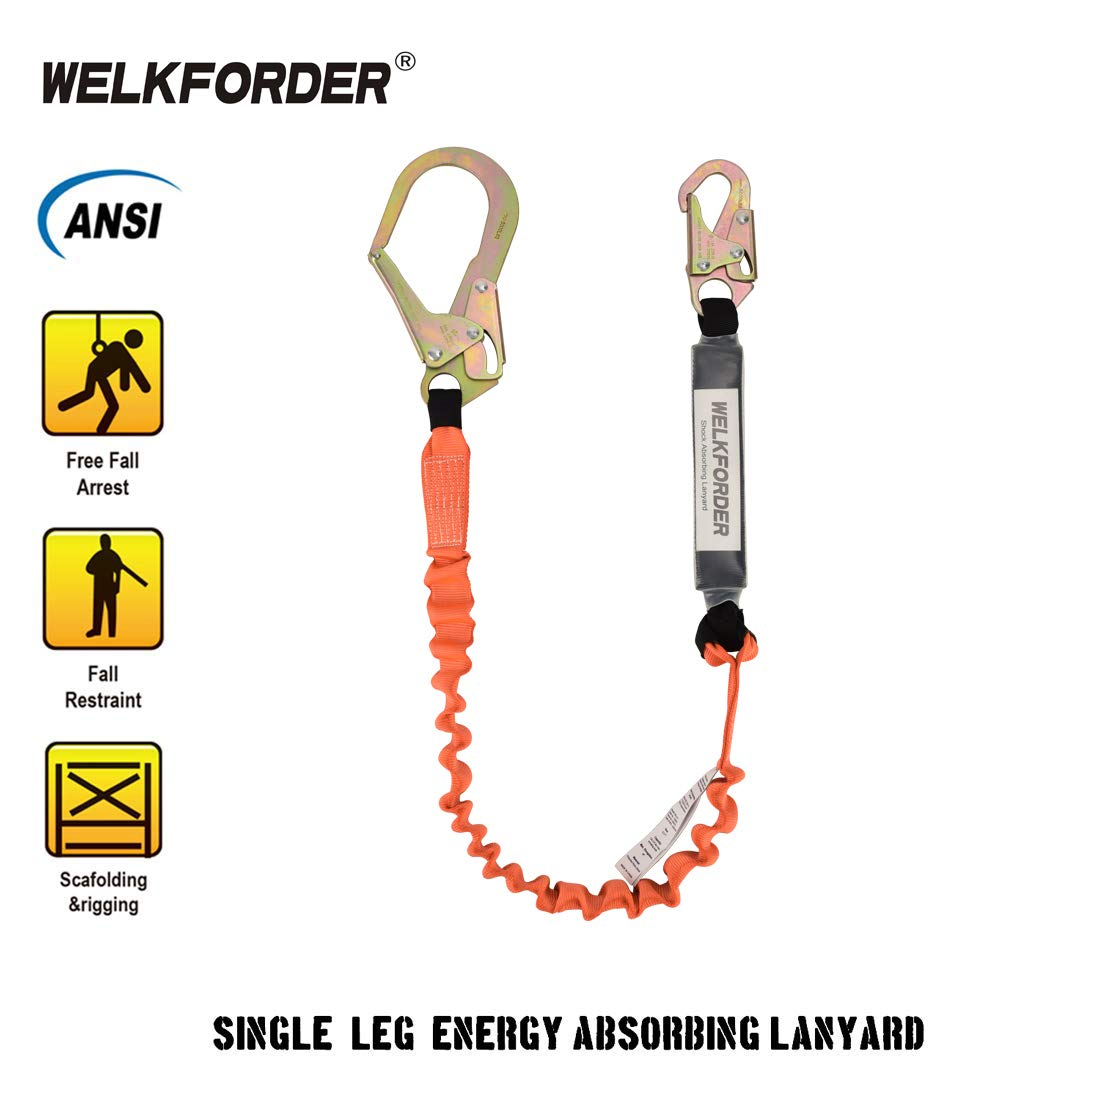 WELKFORDER Single Leg 6-Foot Fall Protection for Construction Shock Absorber Stretch Safety Lanyard with Snap & Rebar Hook Connectors ANSI Z359.13-2013 Complaint by WELKFORDER (Image #3)